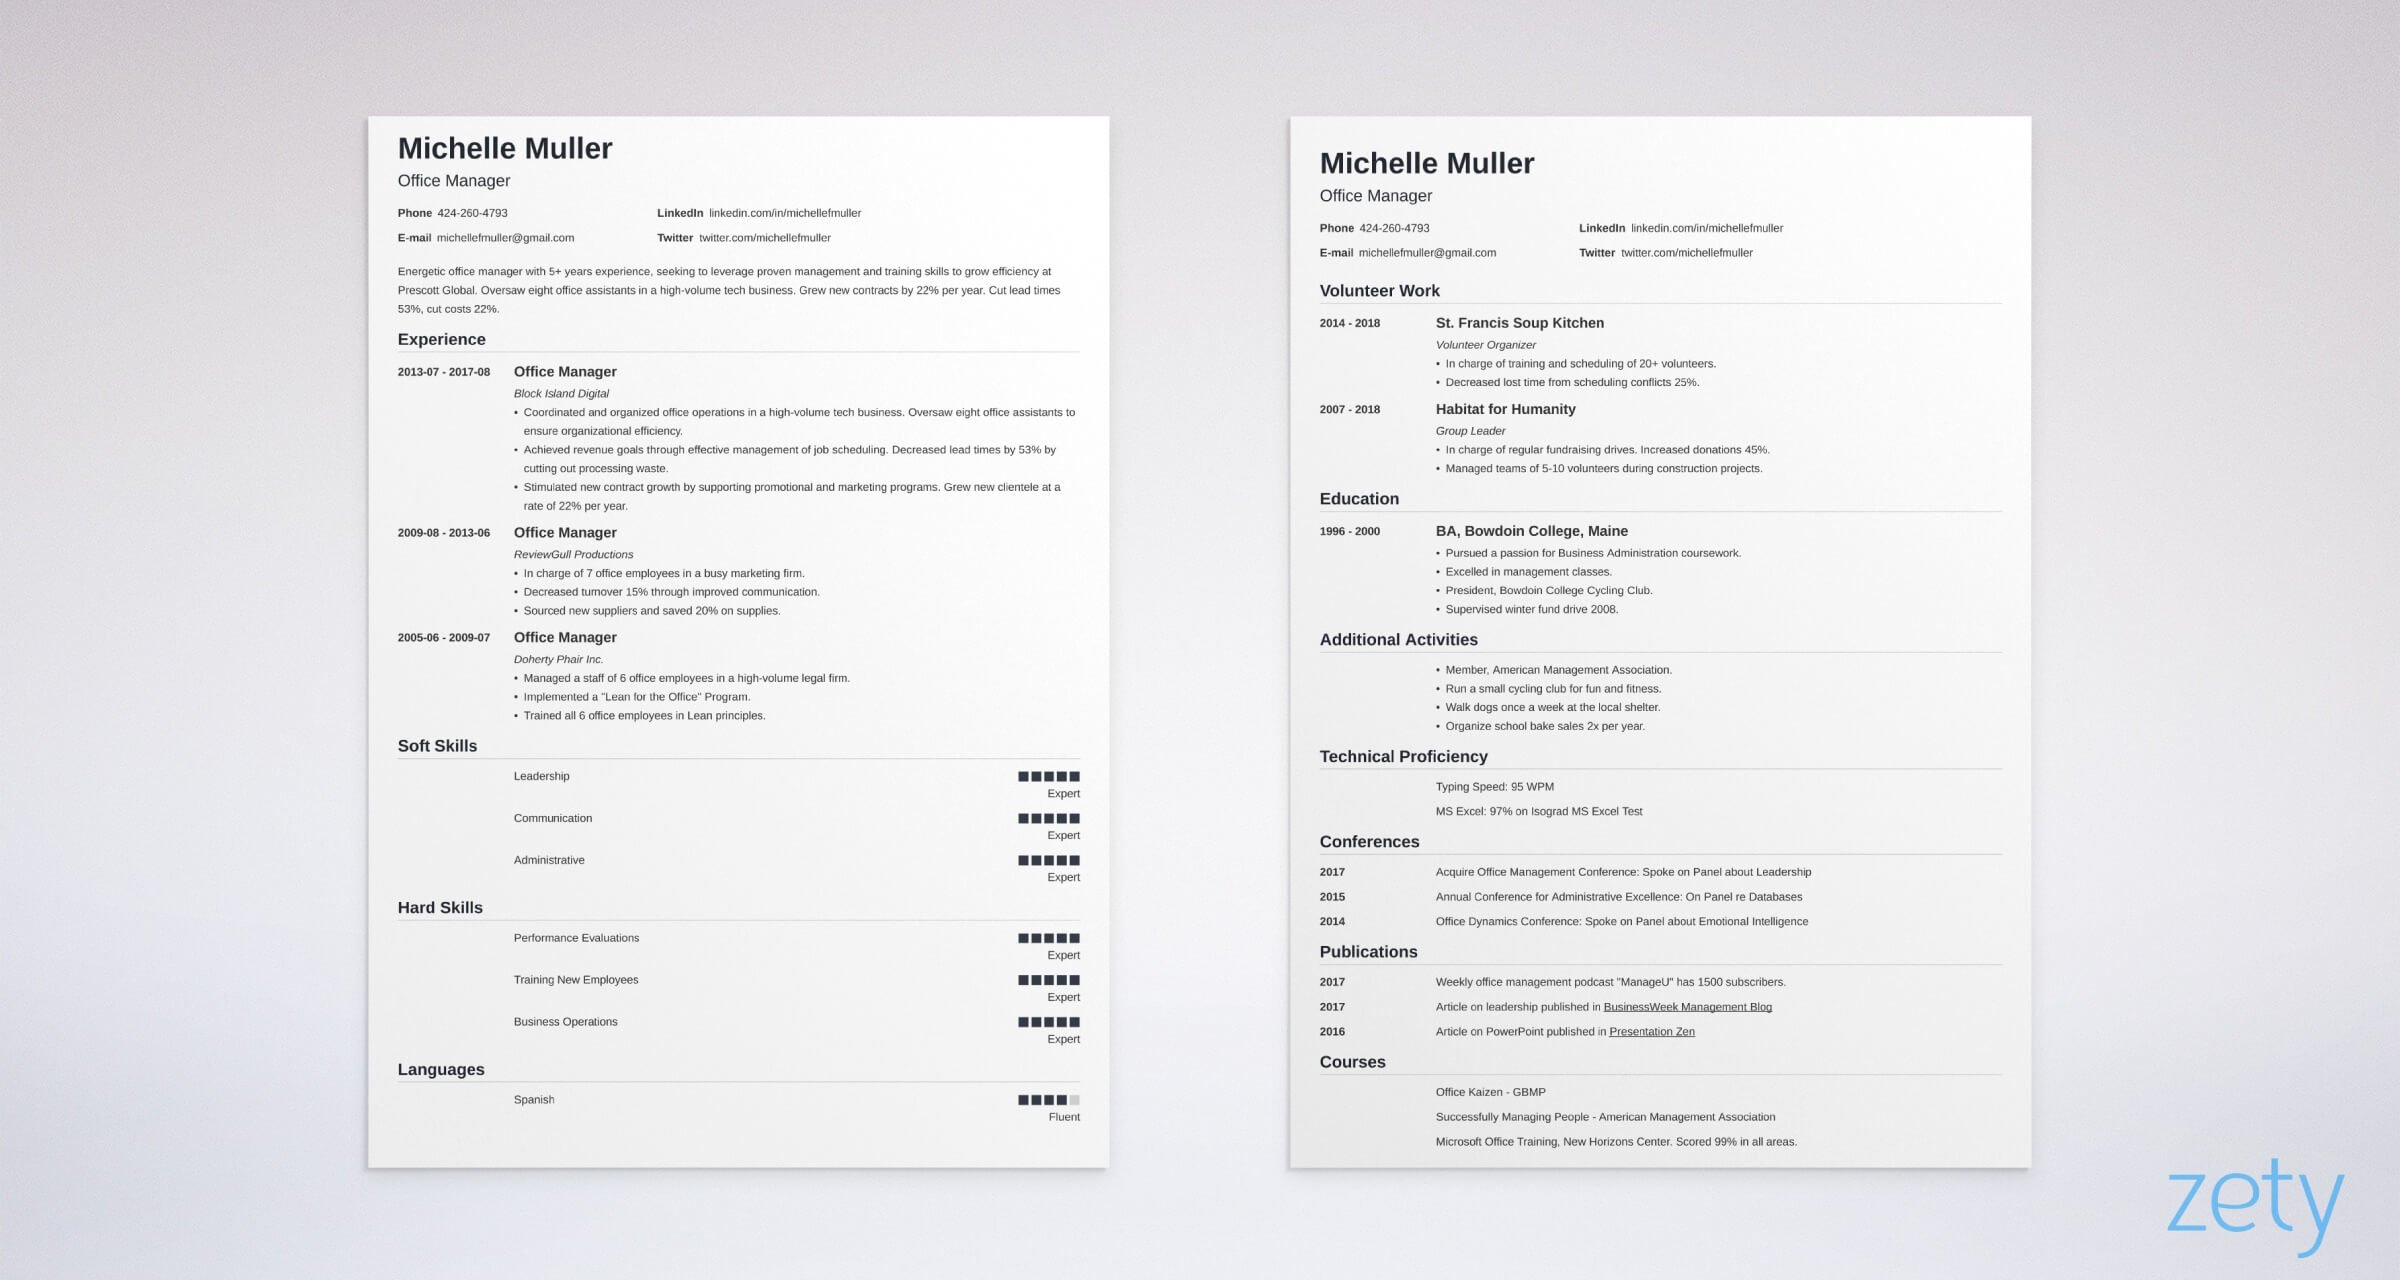 resume it crush your chances format tips two nanica1 mwd field engineer embedded software Resume 2 Page Resume Format